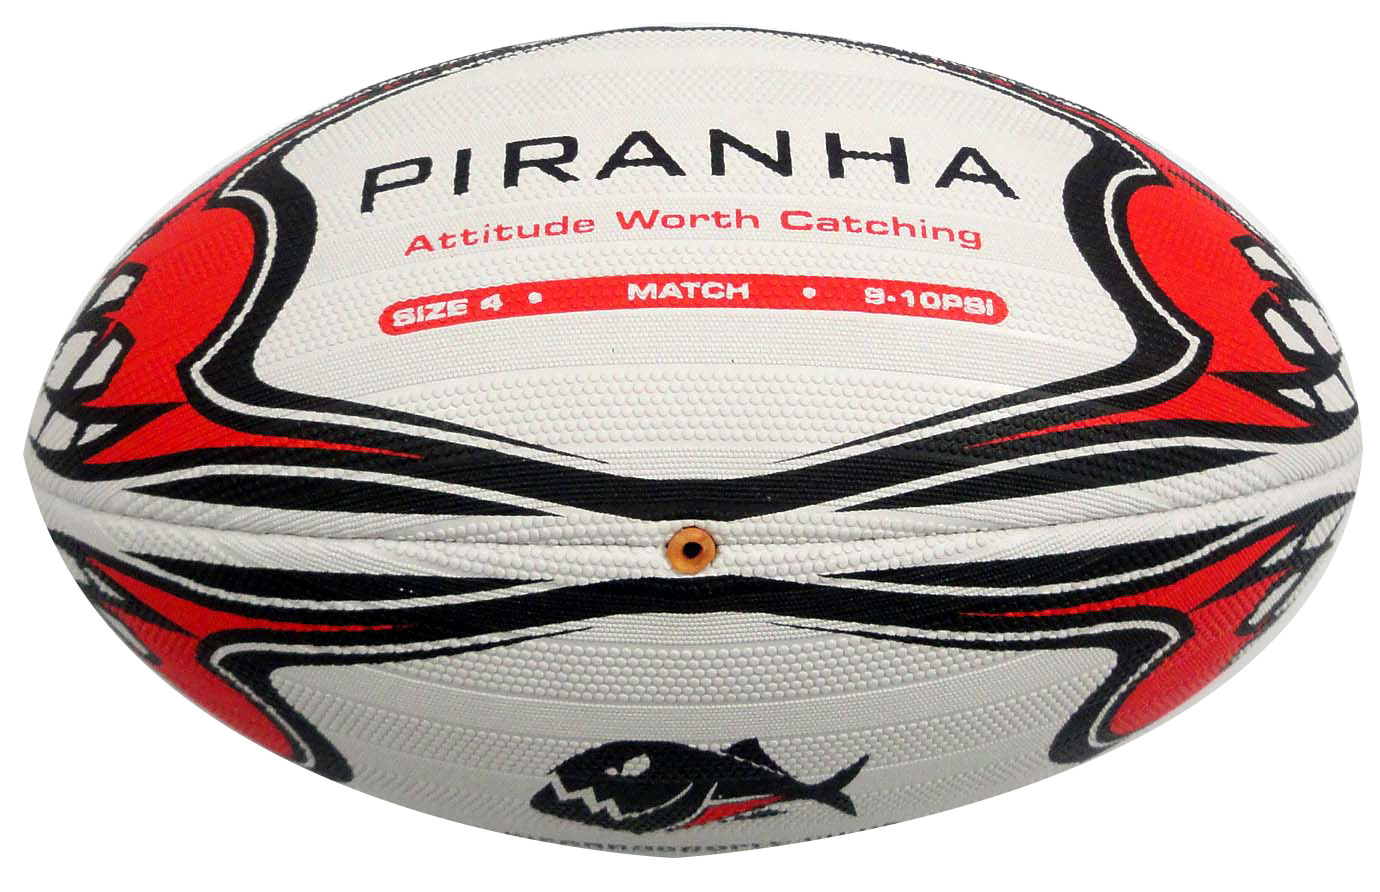 Piranha Rugby Match Ball